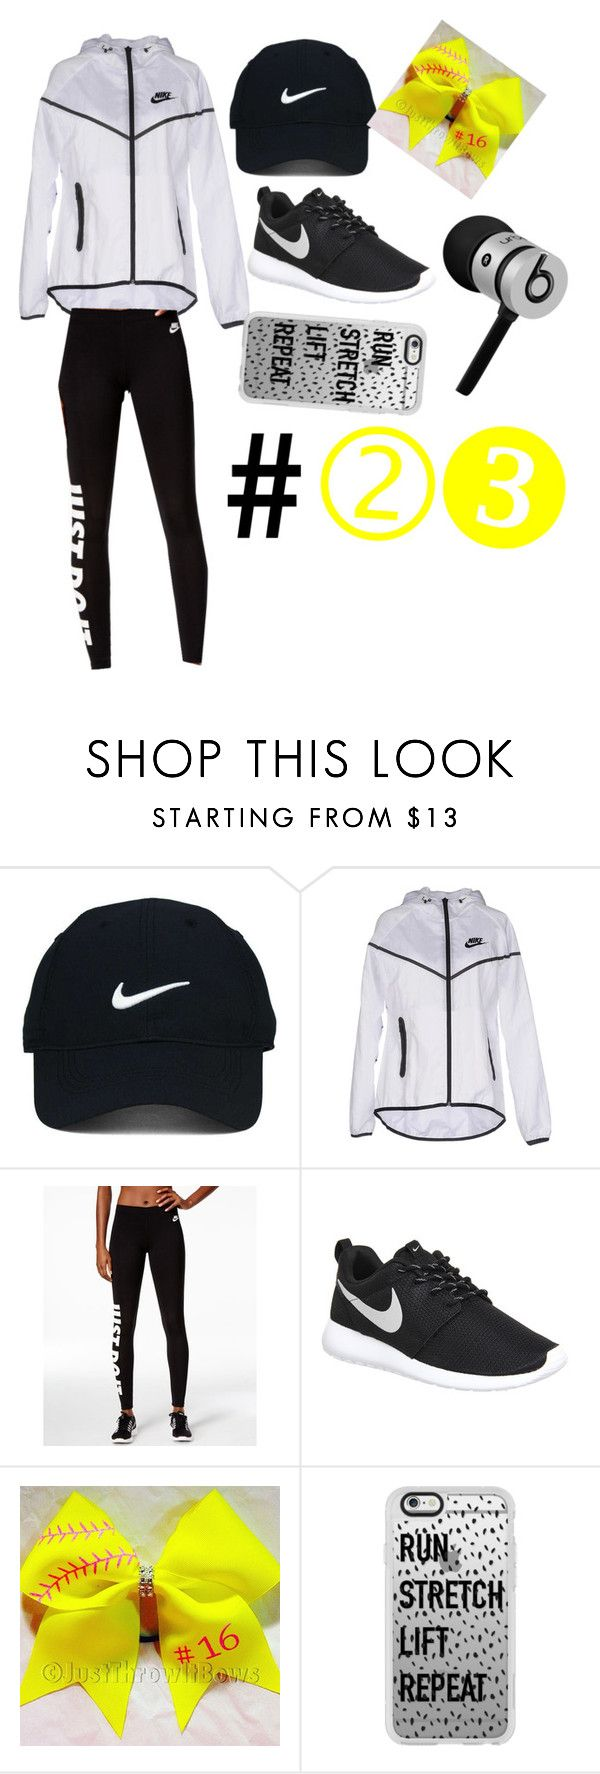 """Softball/track season"" by lay-lay23 ❤ liked on Polyvore featuring Nike Golf, NIKE, Casetify and Beats by Dr. Dre"